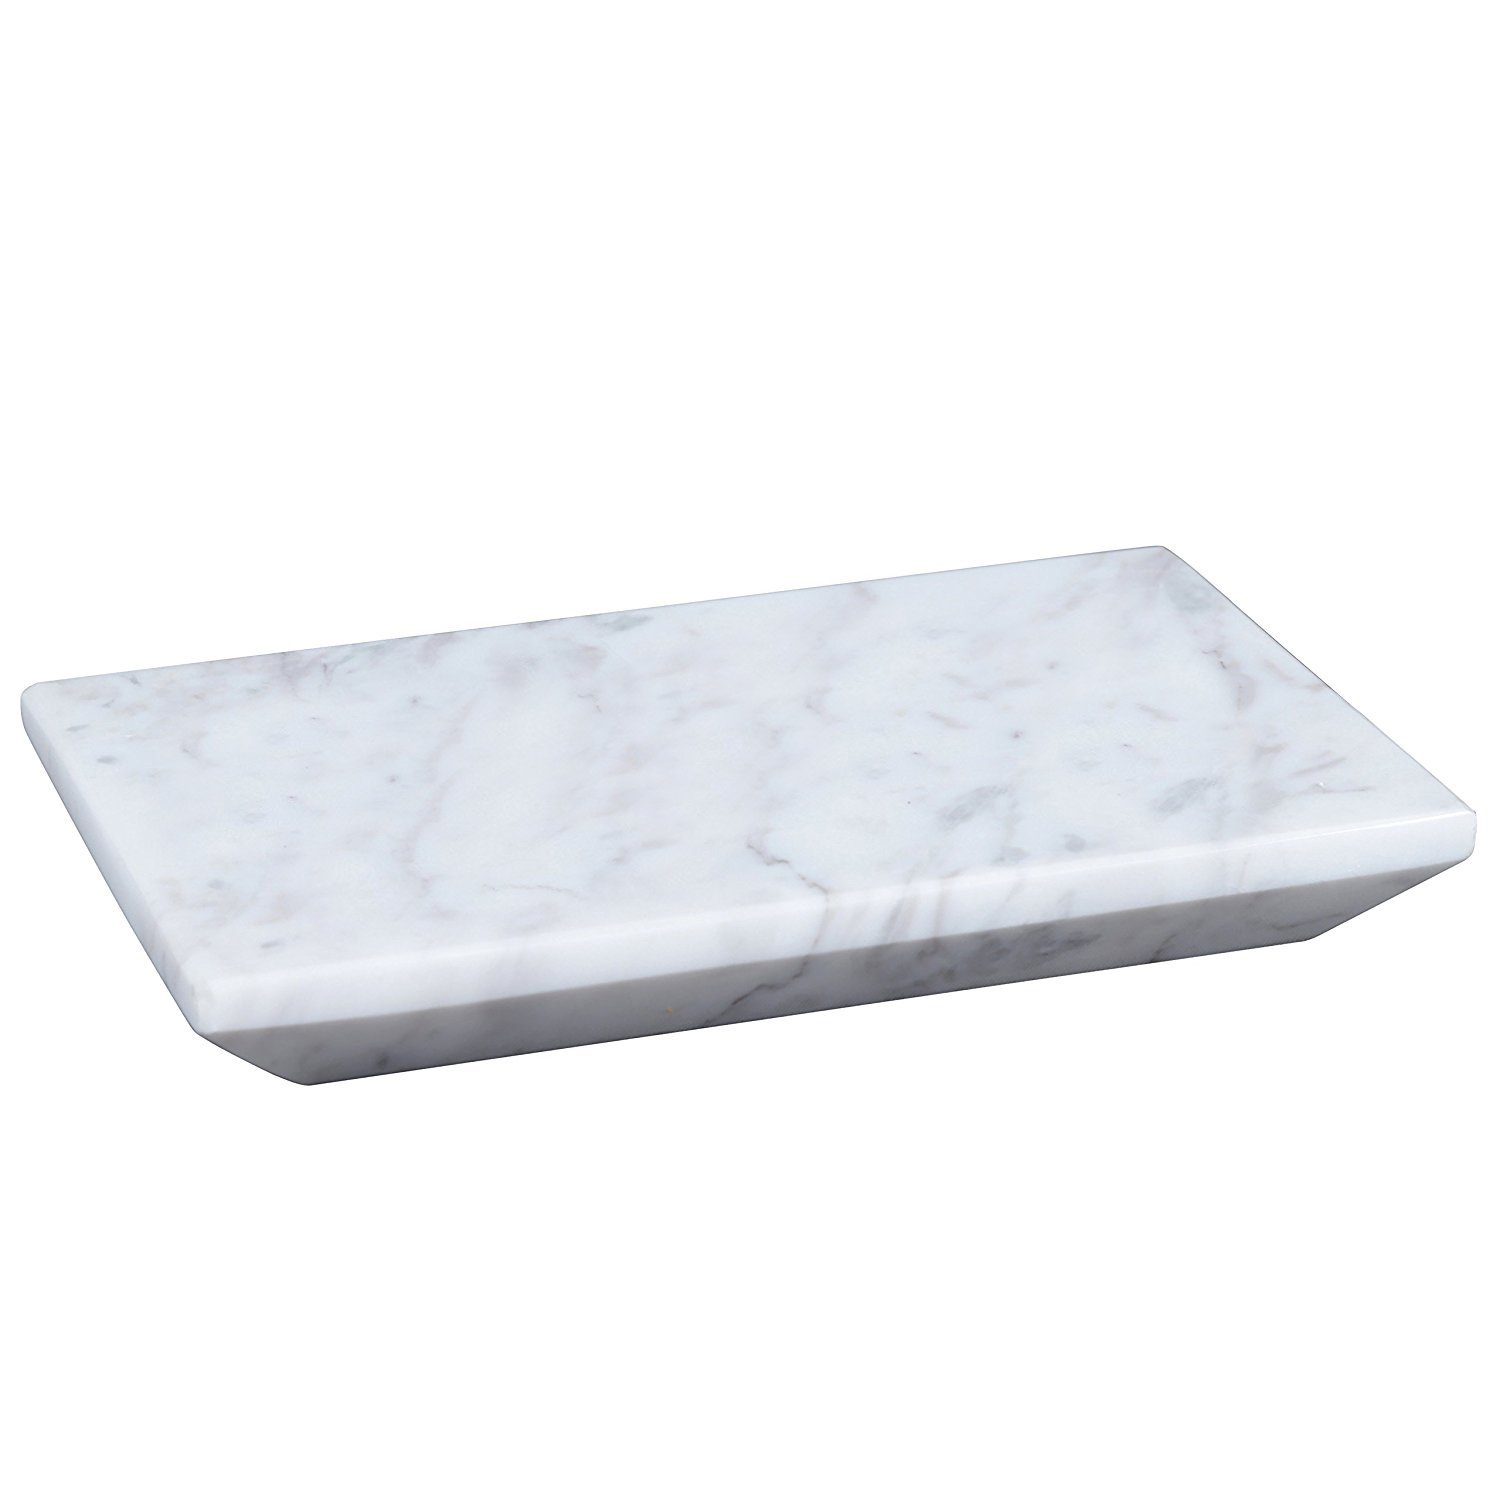 Dflounz Chritmas Gift/Chritmas Sale Marble Stone Soap Dish Bath Accessories for Bathrooms, Tub or Wash Basin in Rectangular Shape Made Out of Indian B-White Marble Stone.